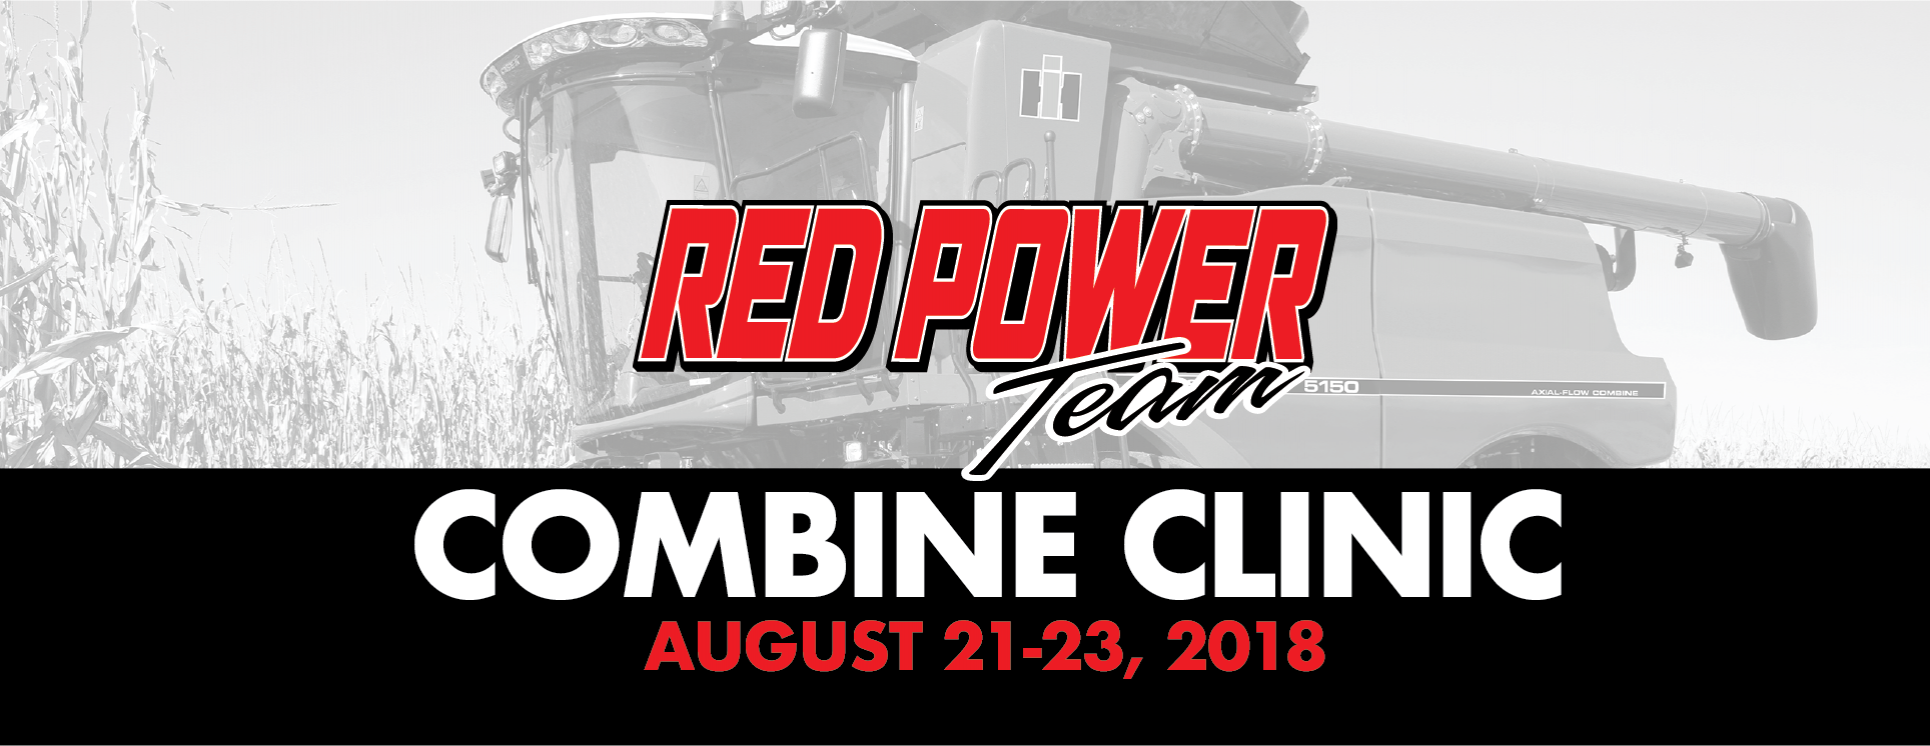 2018 Combine clinic event